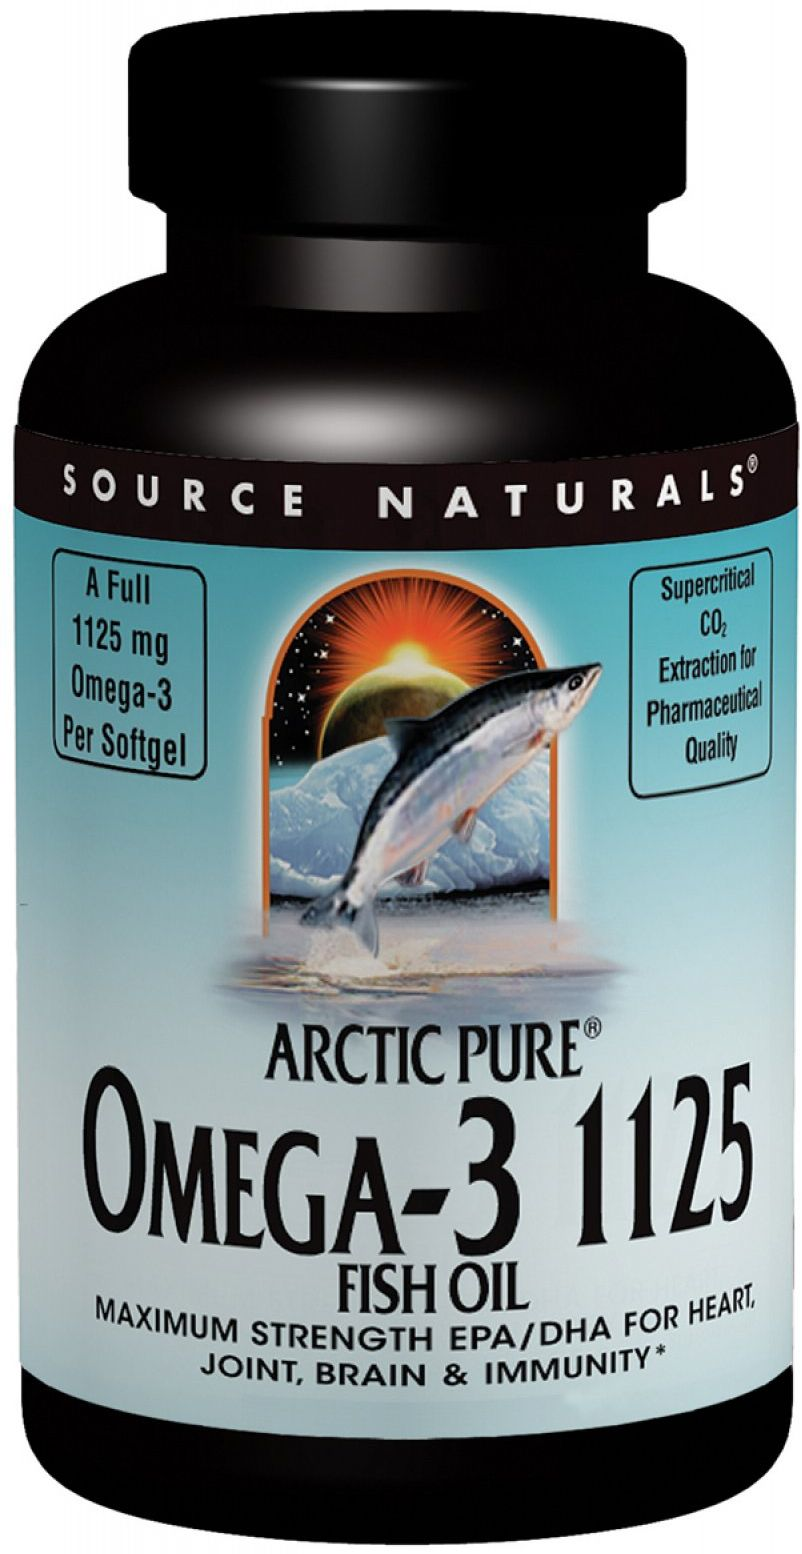 ArcticPure Omega-3 1125 Fish Oil 60 sgels by Source Naturals